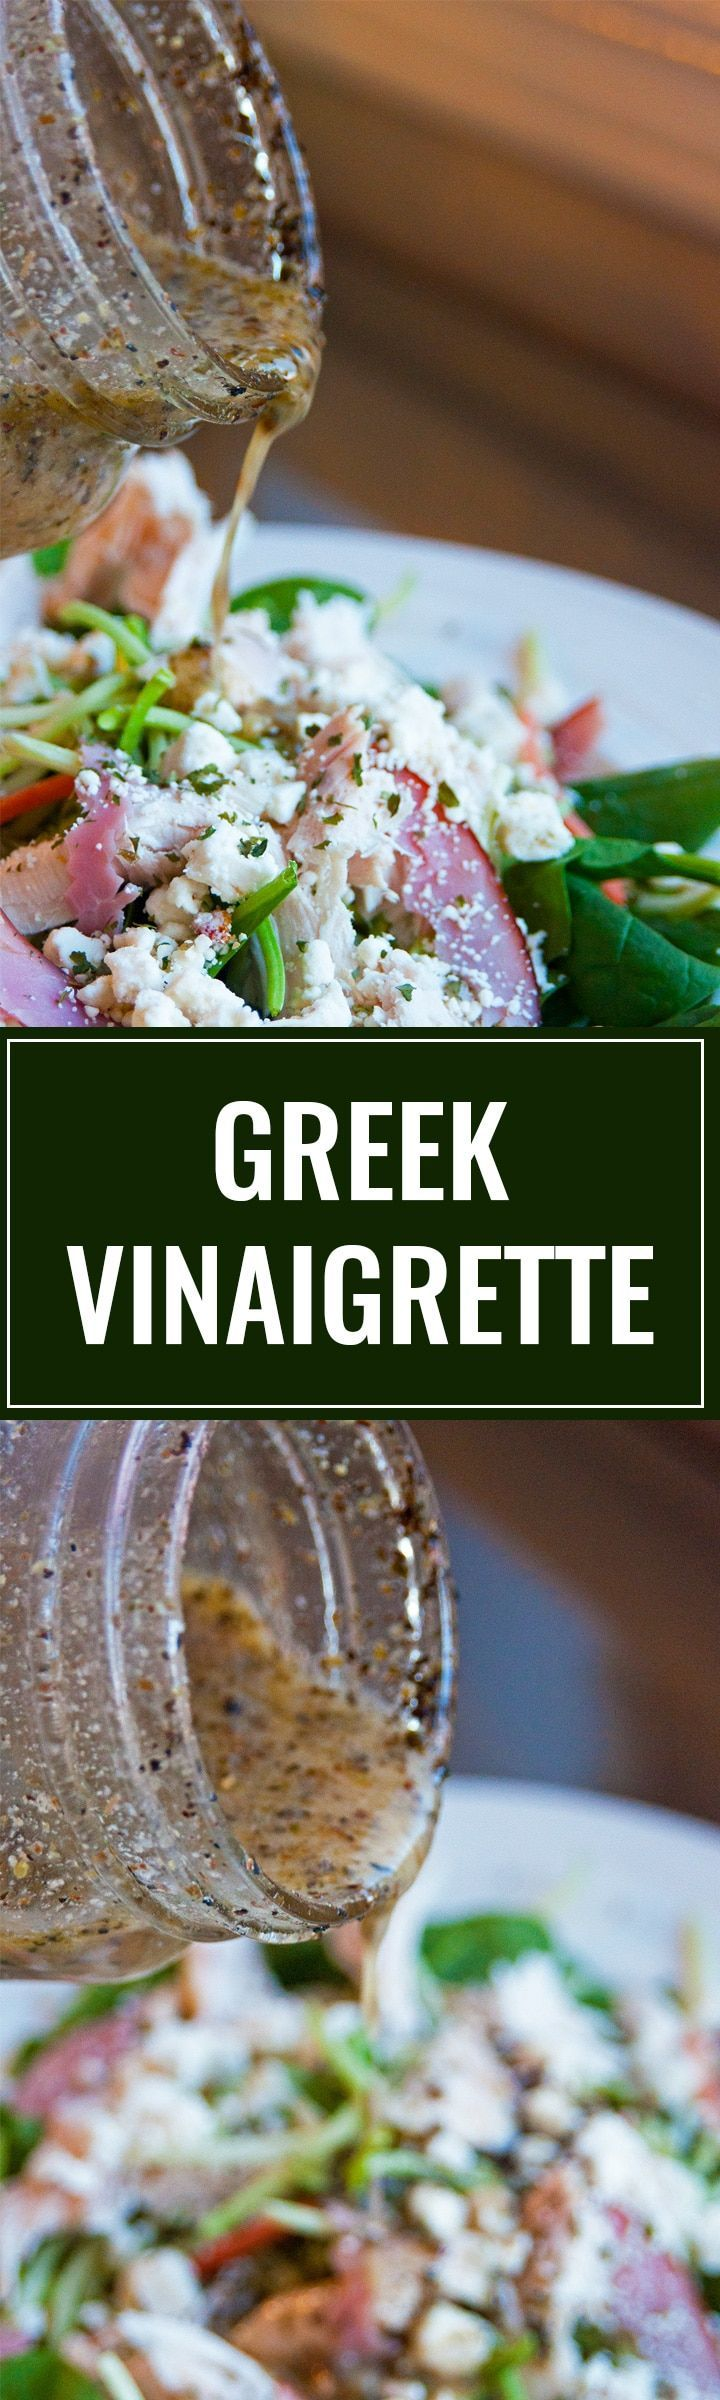 Homemade Greek Vinaigrette. This homemade salad dressing is delicious over salads, as a marinade and on a greek pizza! This healthy recipe packs a clean eating punch! | thebewitchinkitchen.com